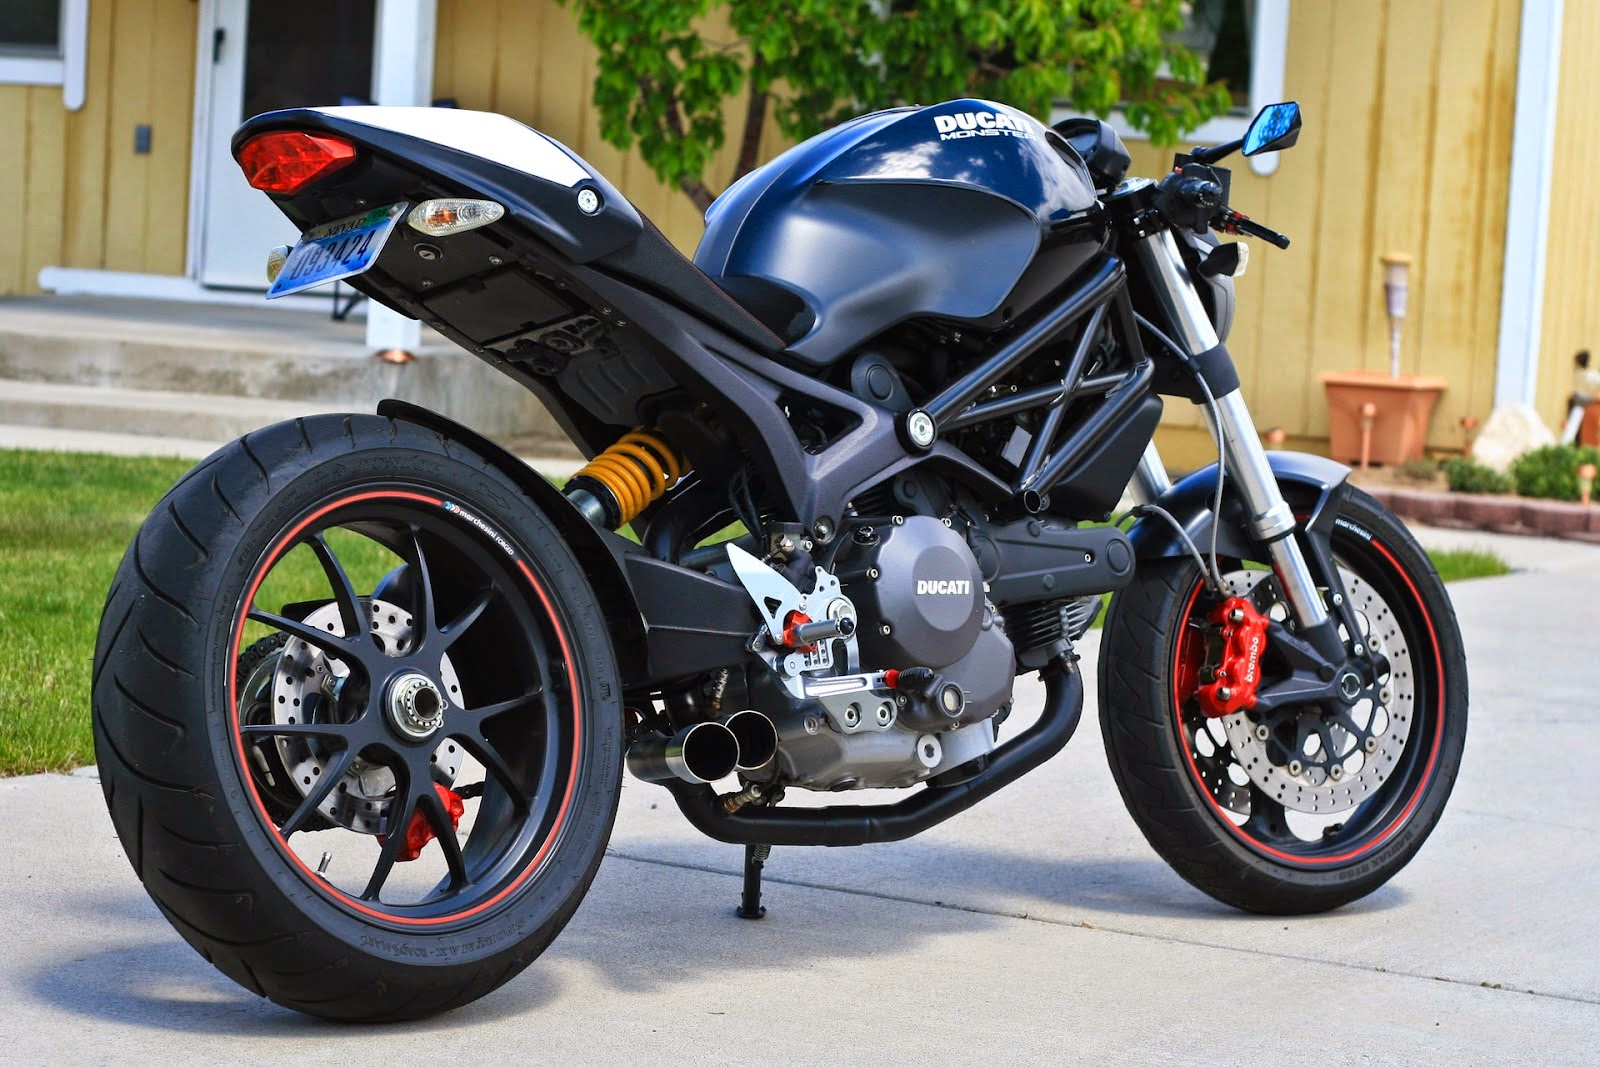 ducati monster 696 cafe racer - way2speed performance